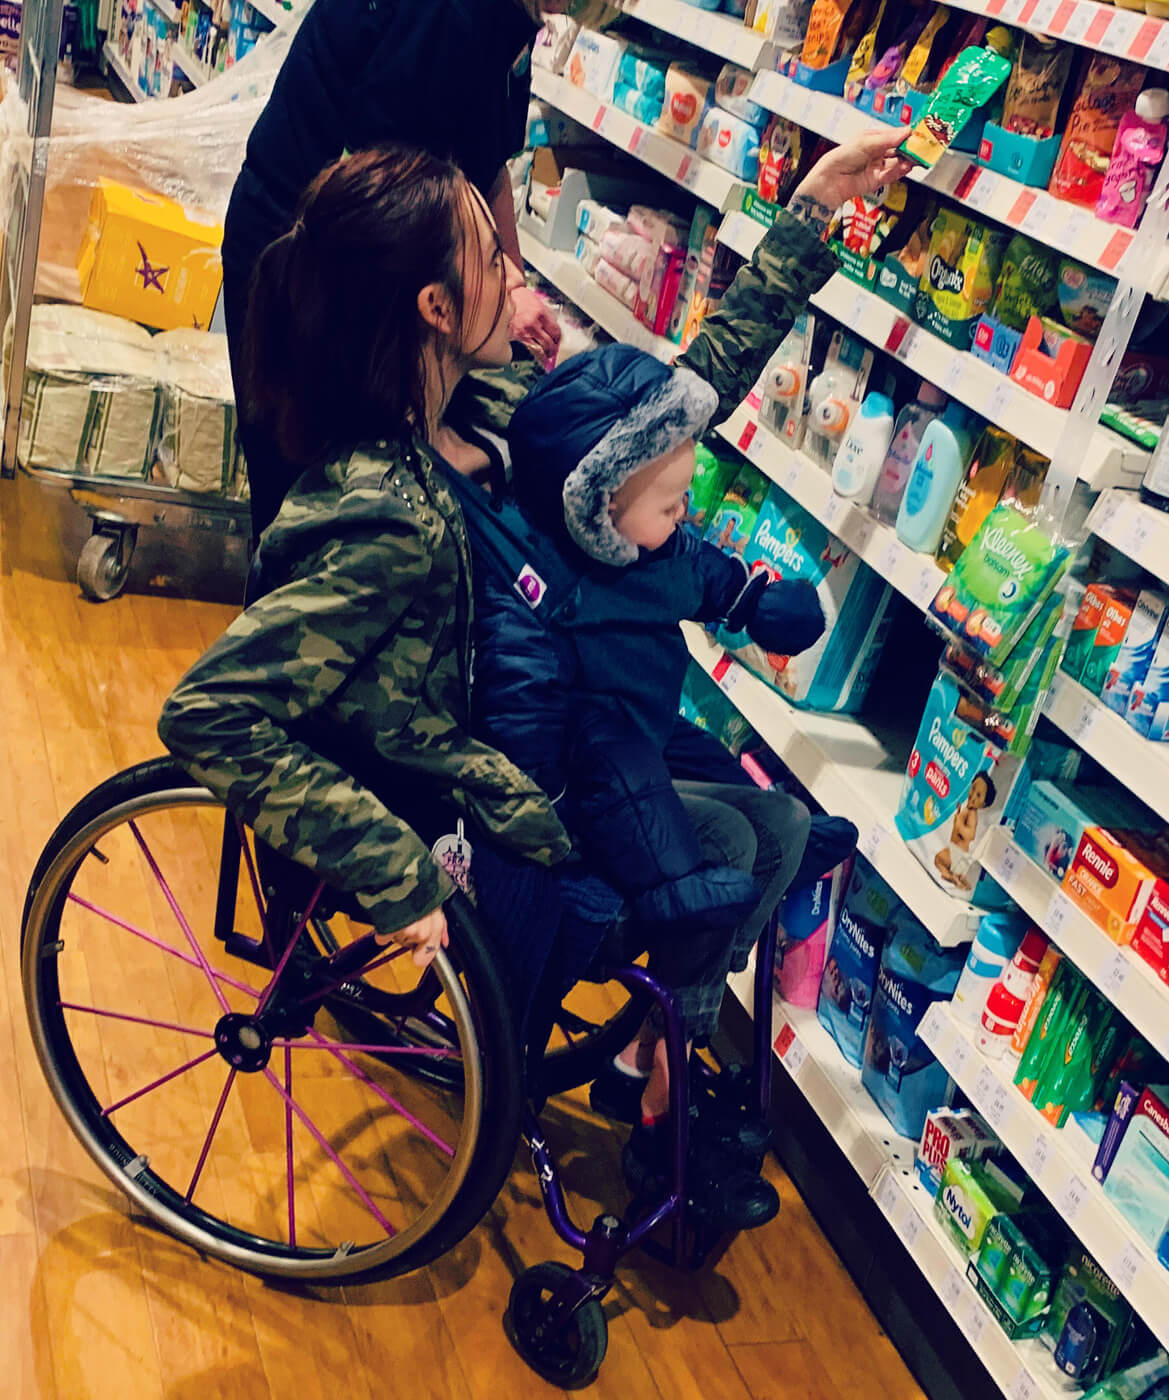 Molly is in her manual wheelchair with her son on her lap. They are in a shop. Molly and Oscar are both reaching for something on the shelf.